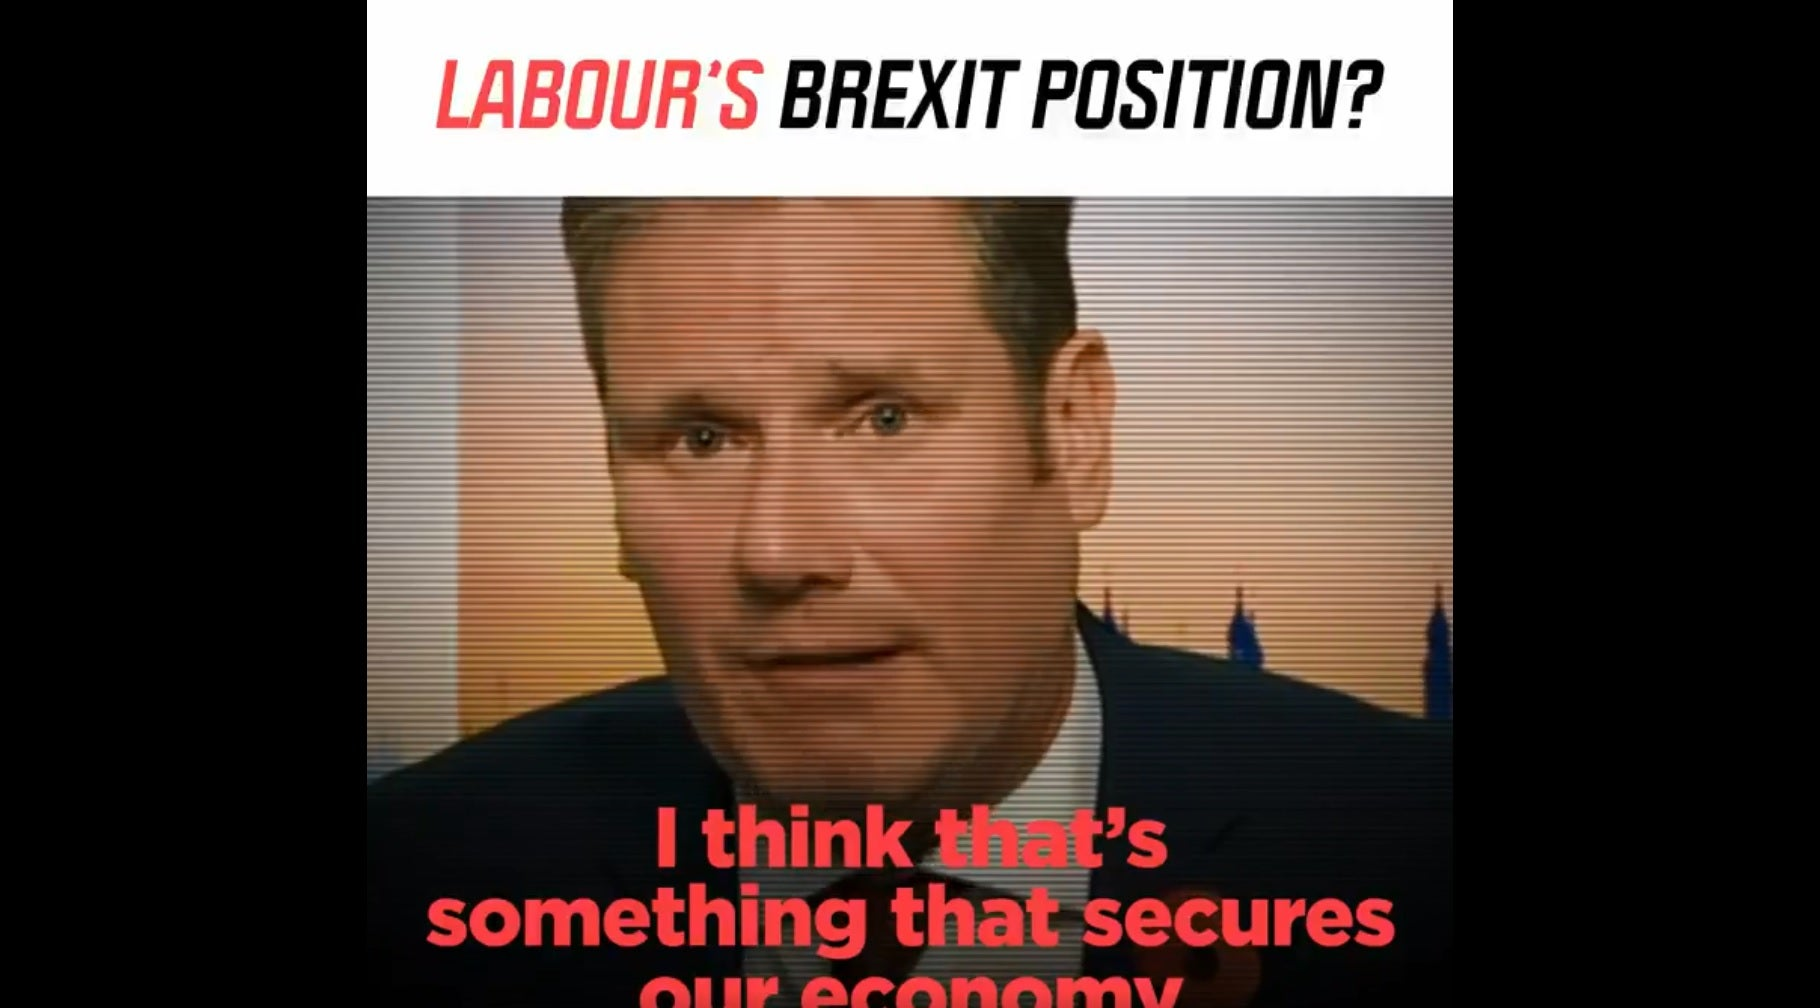 Keir Starmer looks stumped in this Tory video – but the original clip is very different